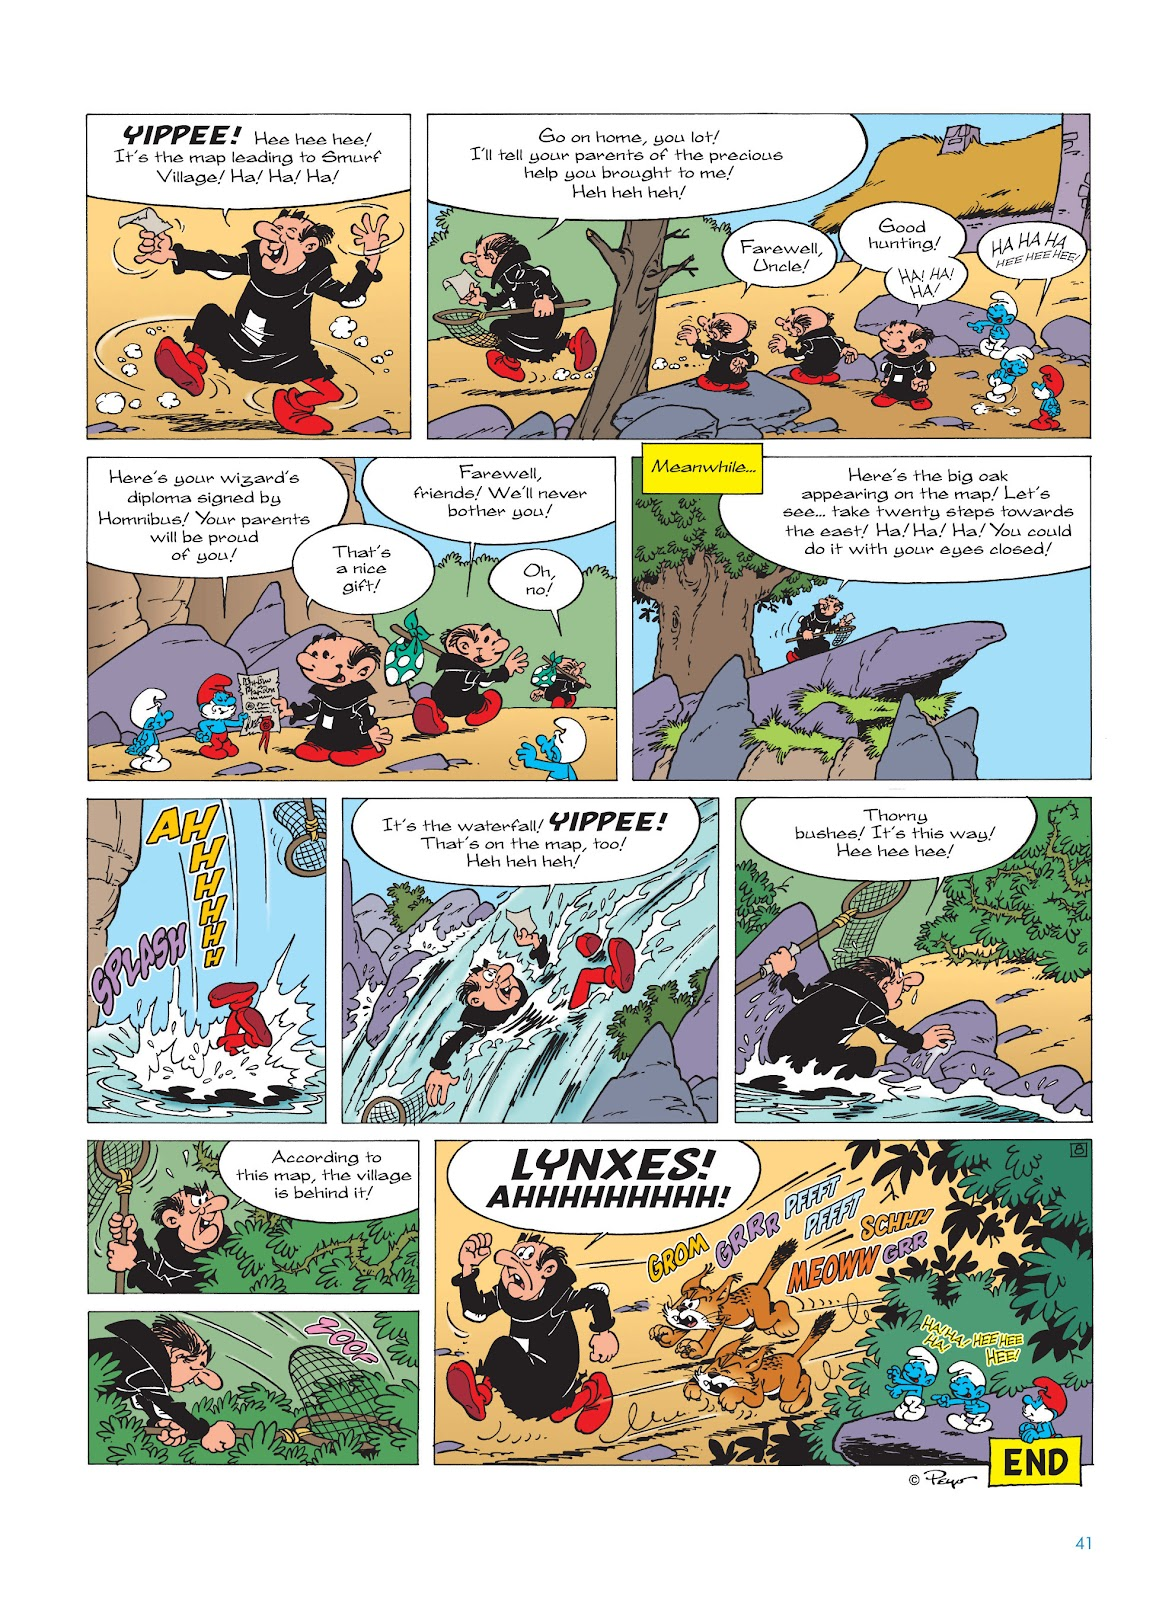 Read online The Smurfs comic -  Issue #17 - 41